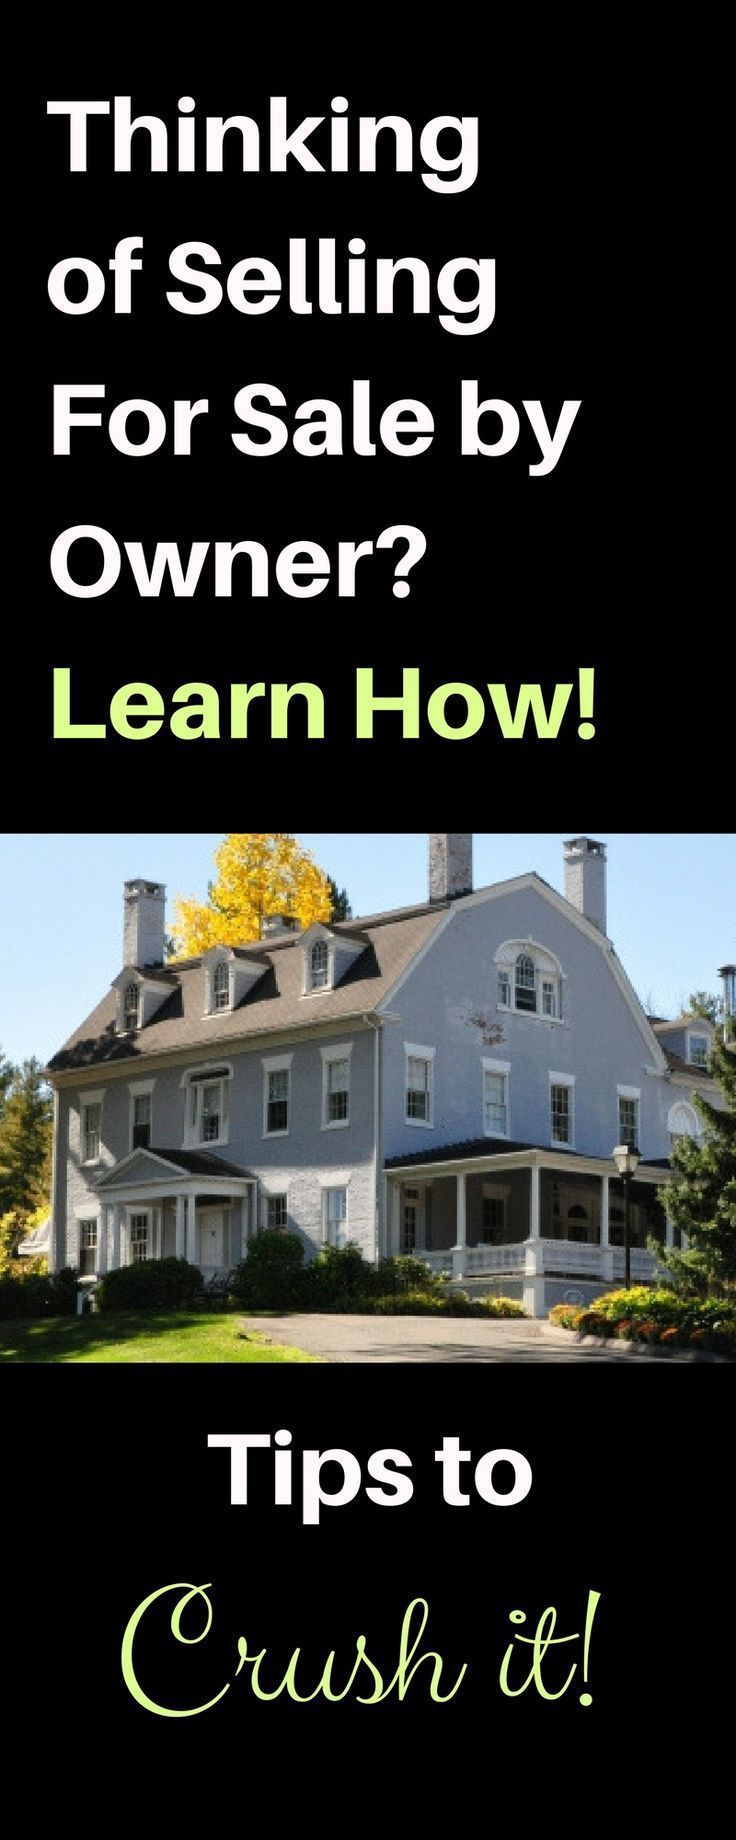 How To Sell Your Home Without Help Tips On Home Selling Fsbo